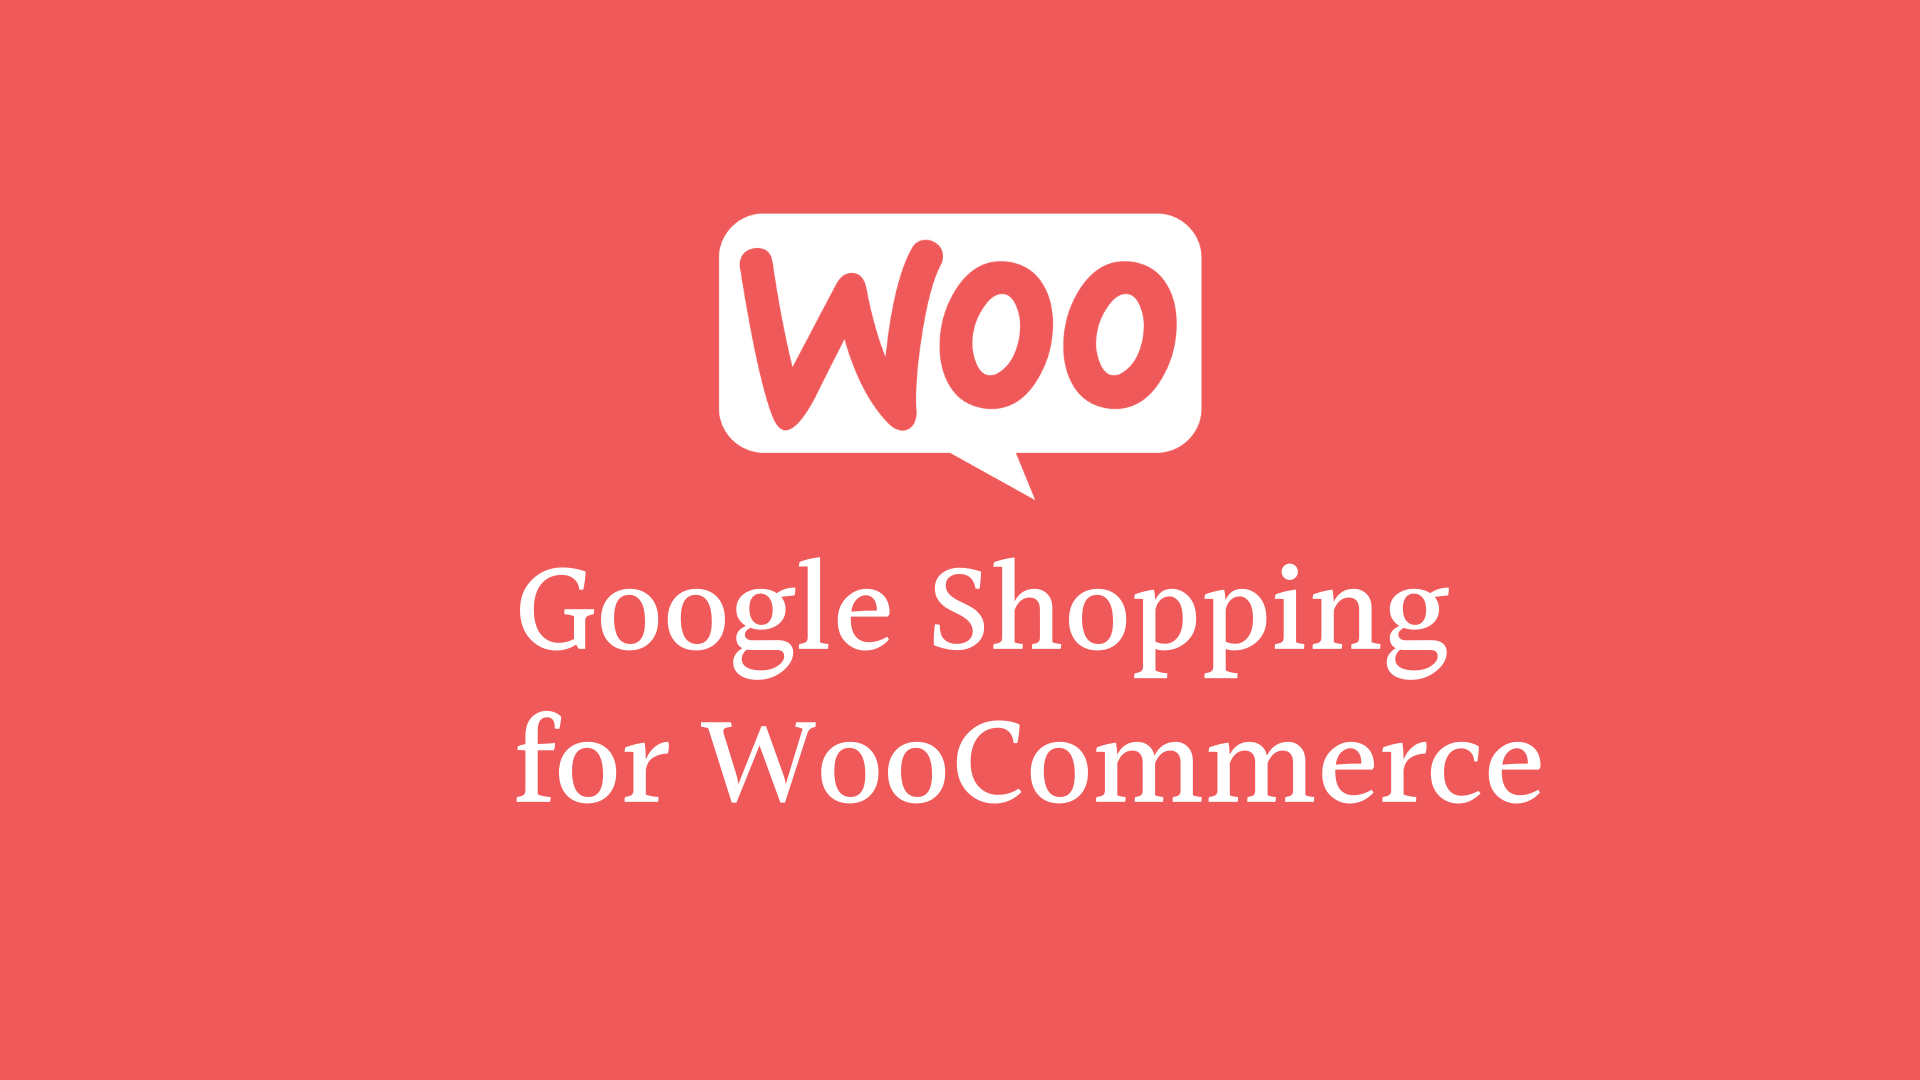 Google Shopping for WooCommerce: How to Set Up Your Product Feed